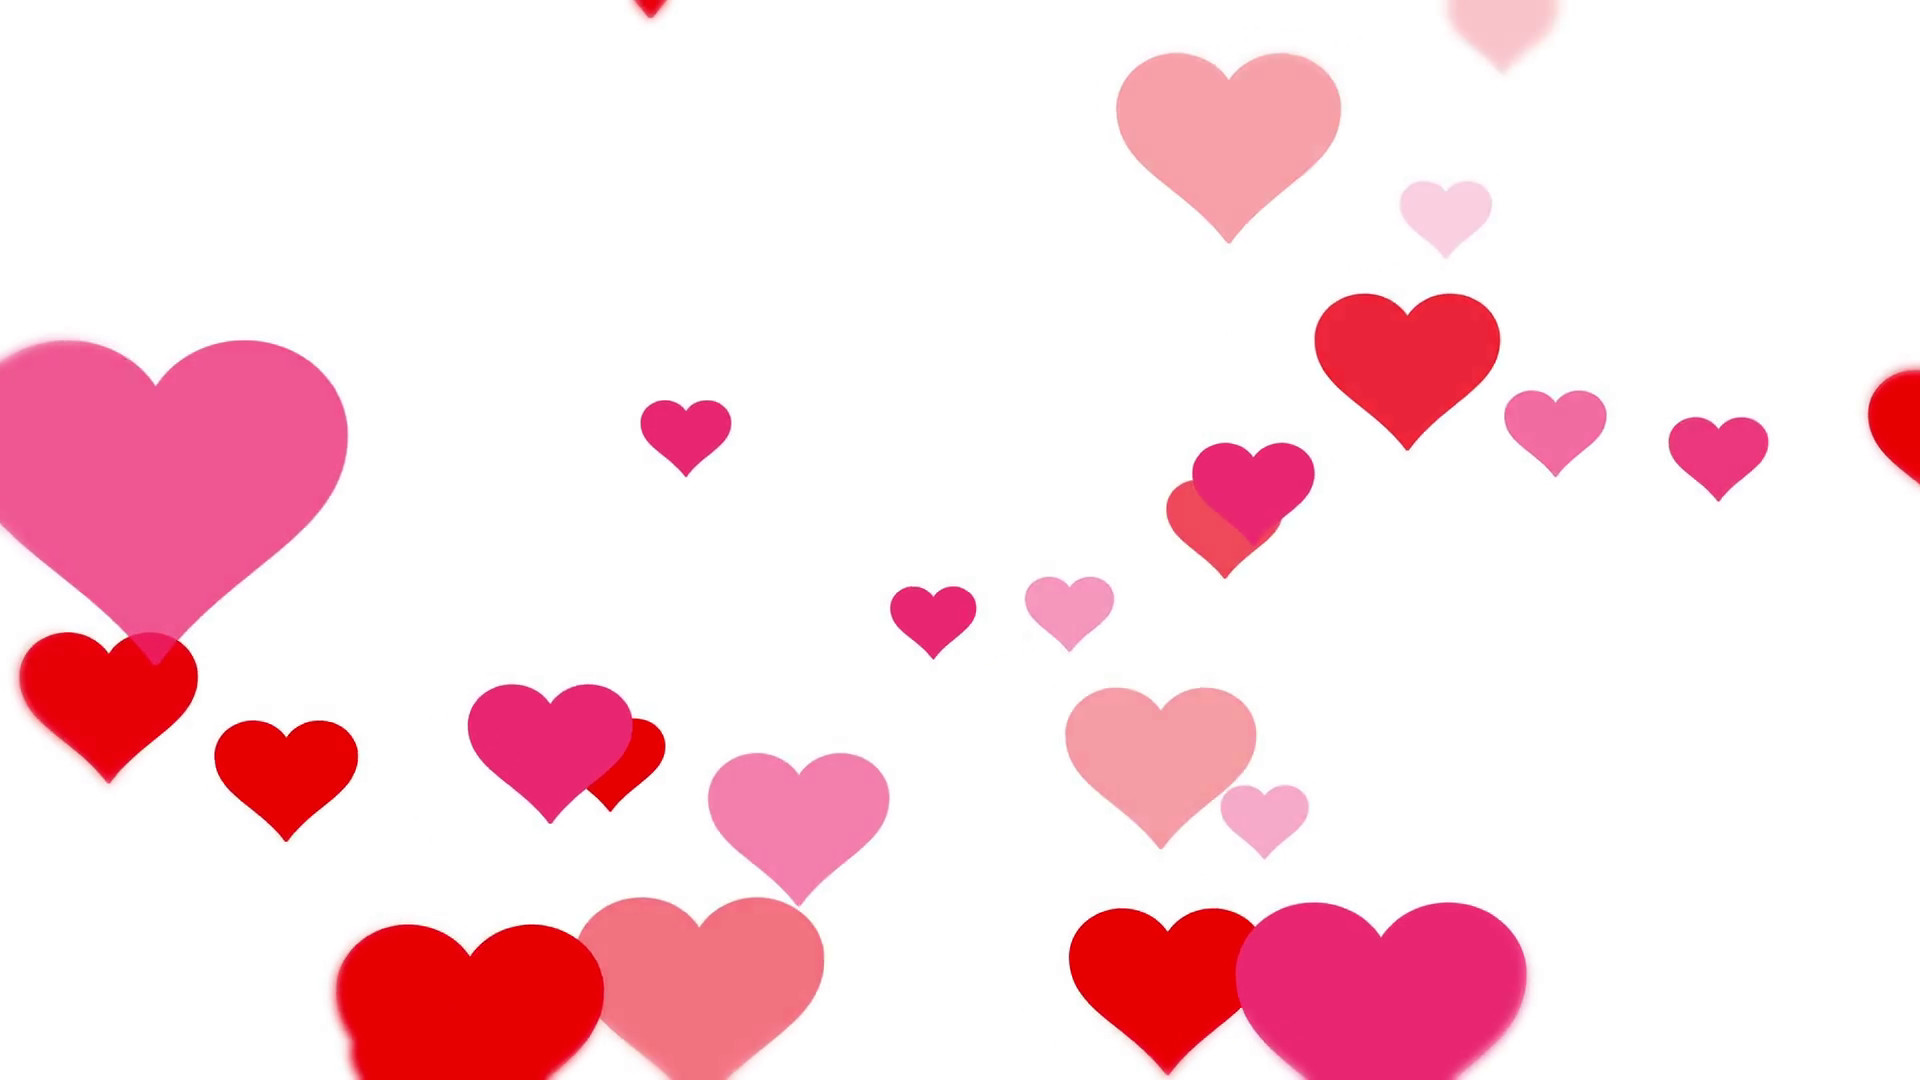 love hearts background 183��